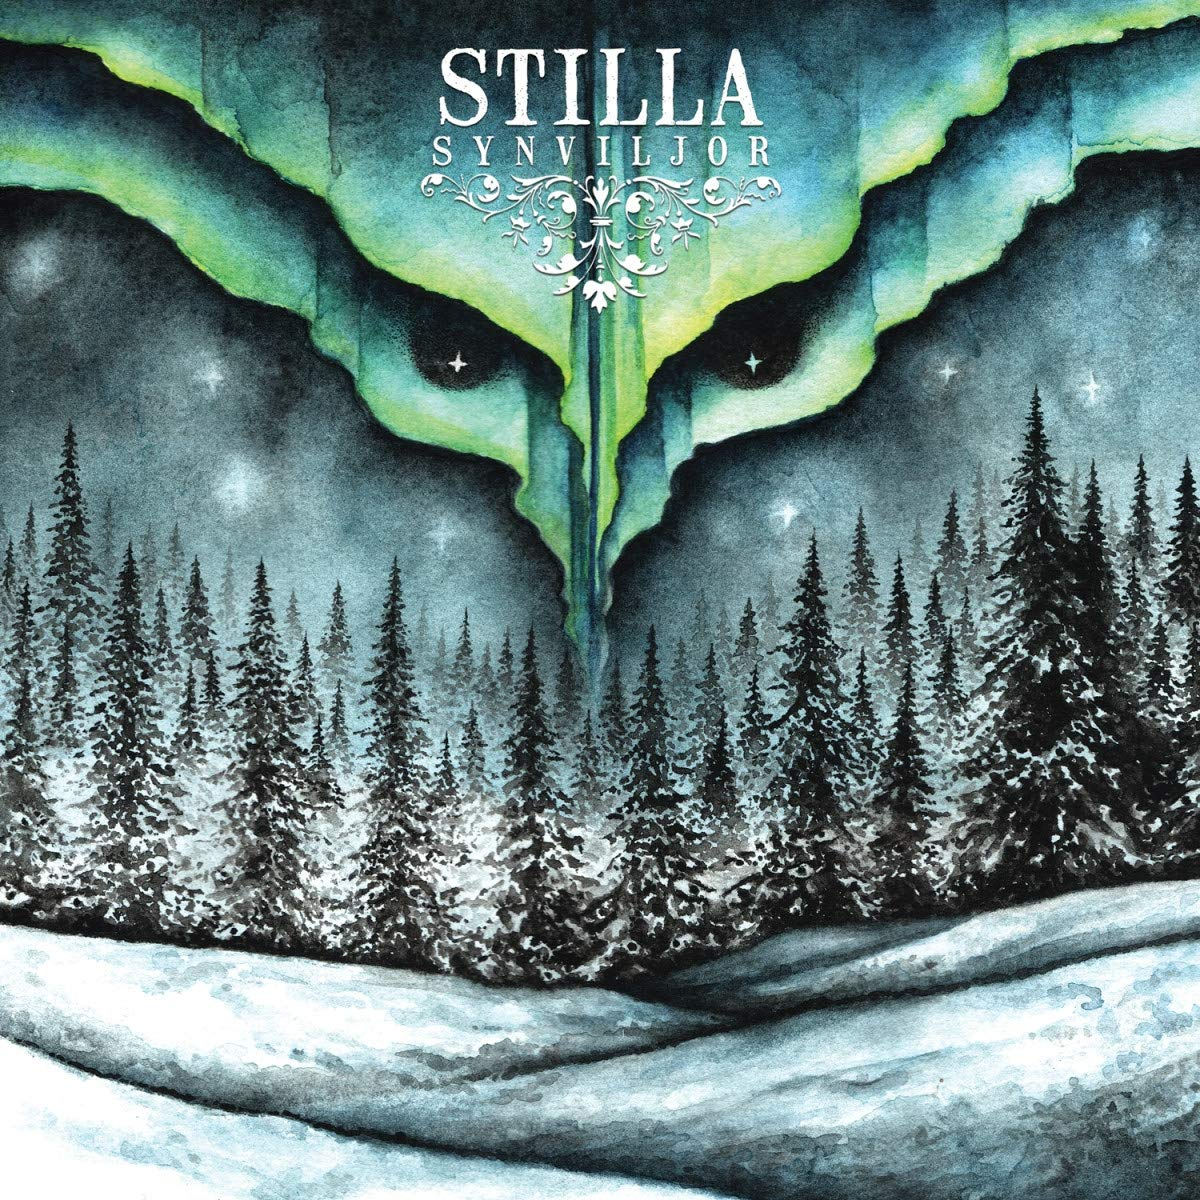 CD : Stilla - Synviljor (CD)